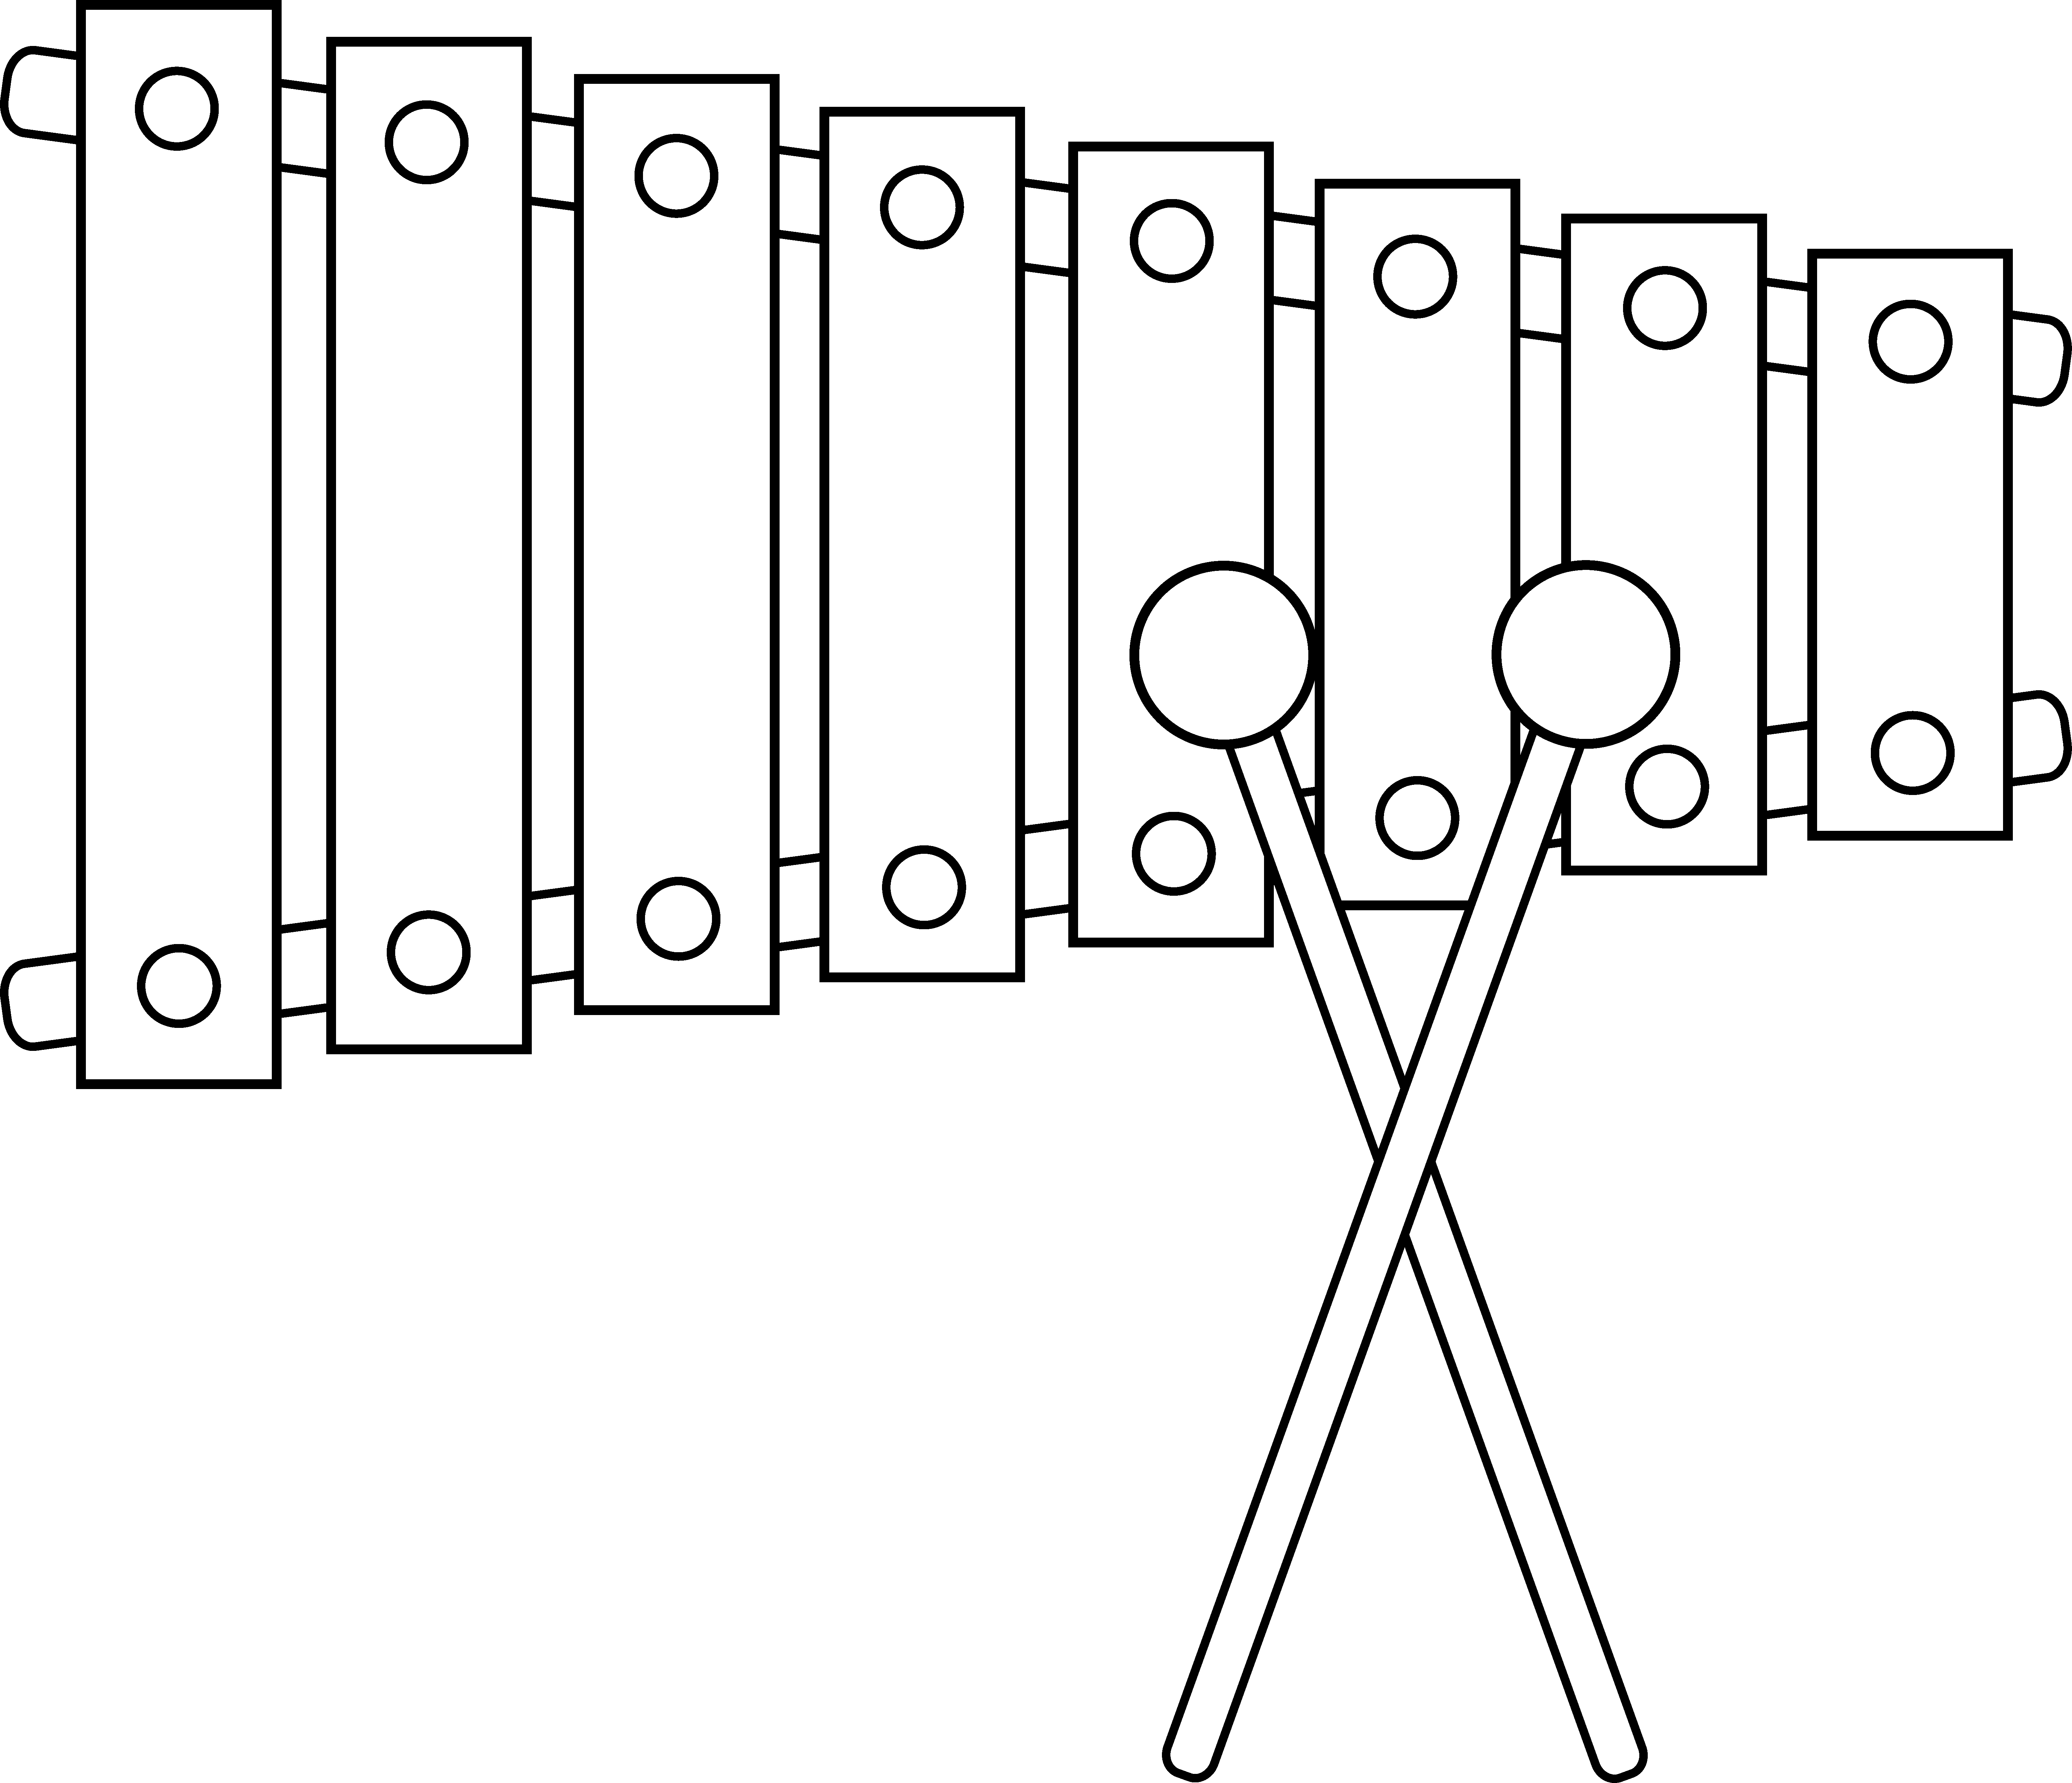 Xylophone clipart preschool music. Line art free clip